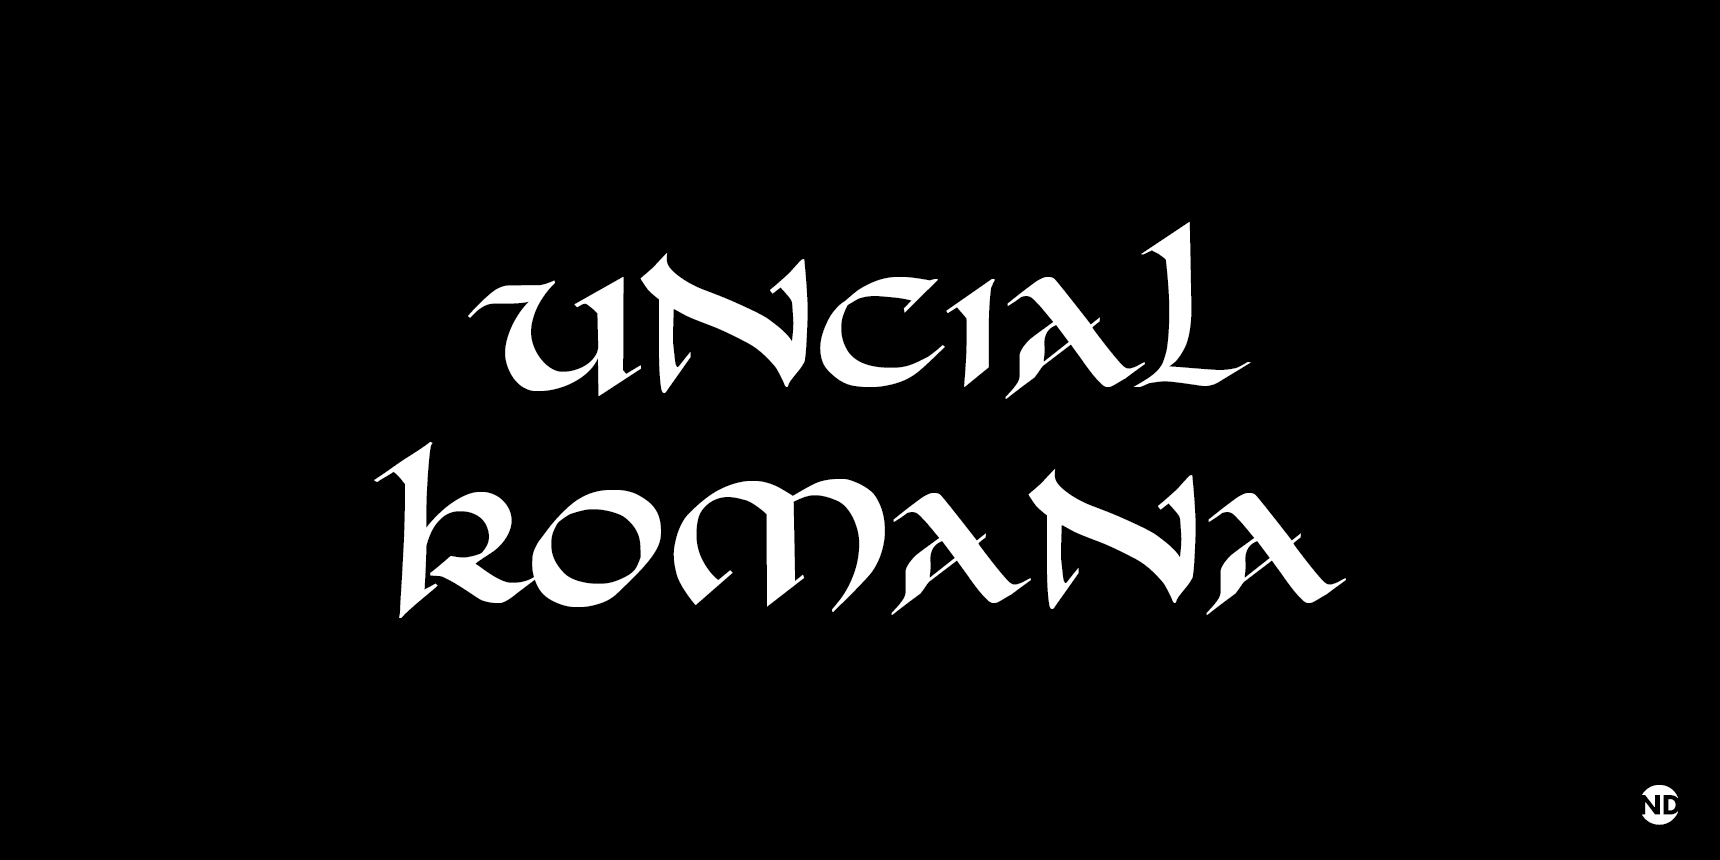 Uncial Romana ND